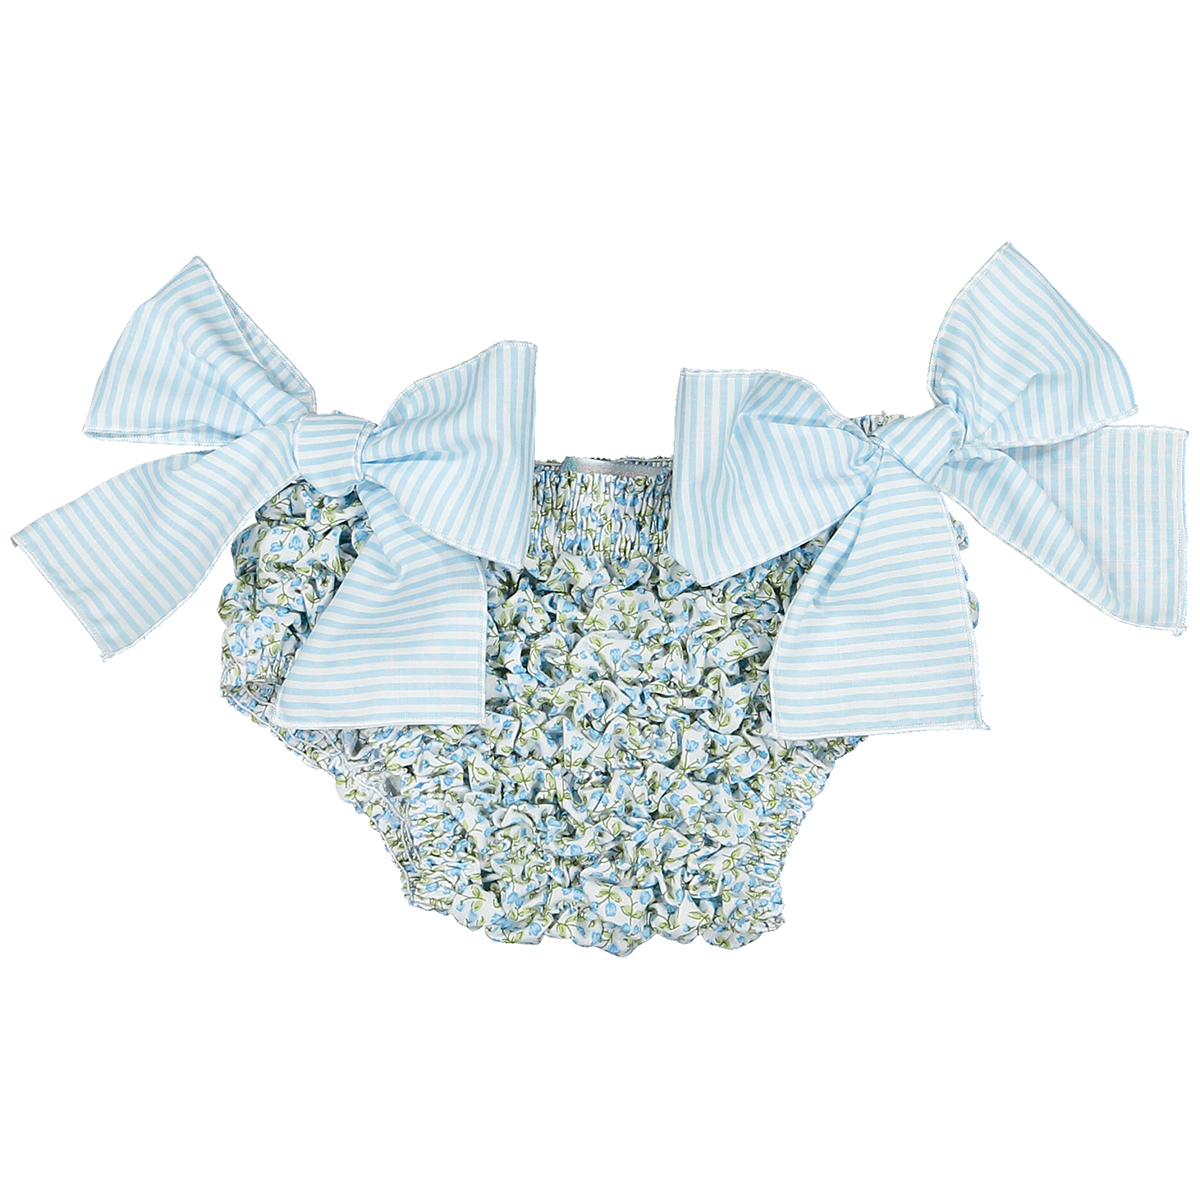 Sal & Pimenta Baby/Toddler/Big Kid Chiado Bikini Bottom